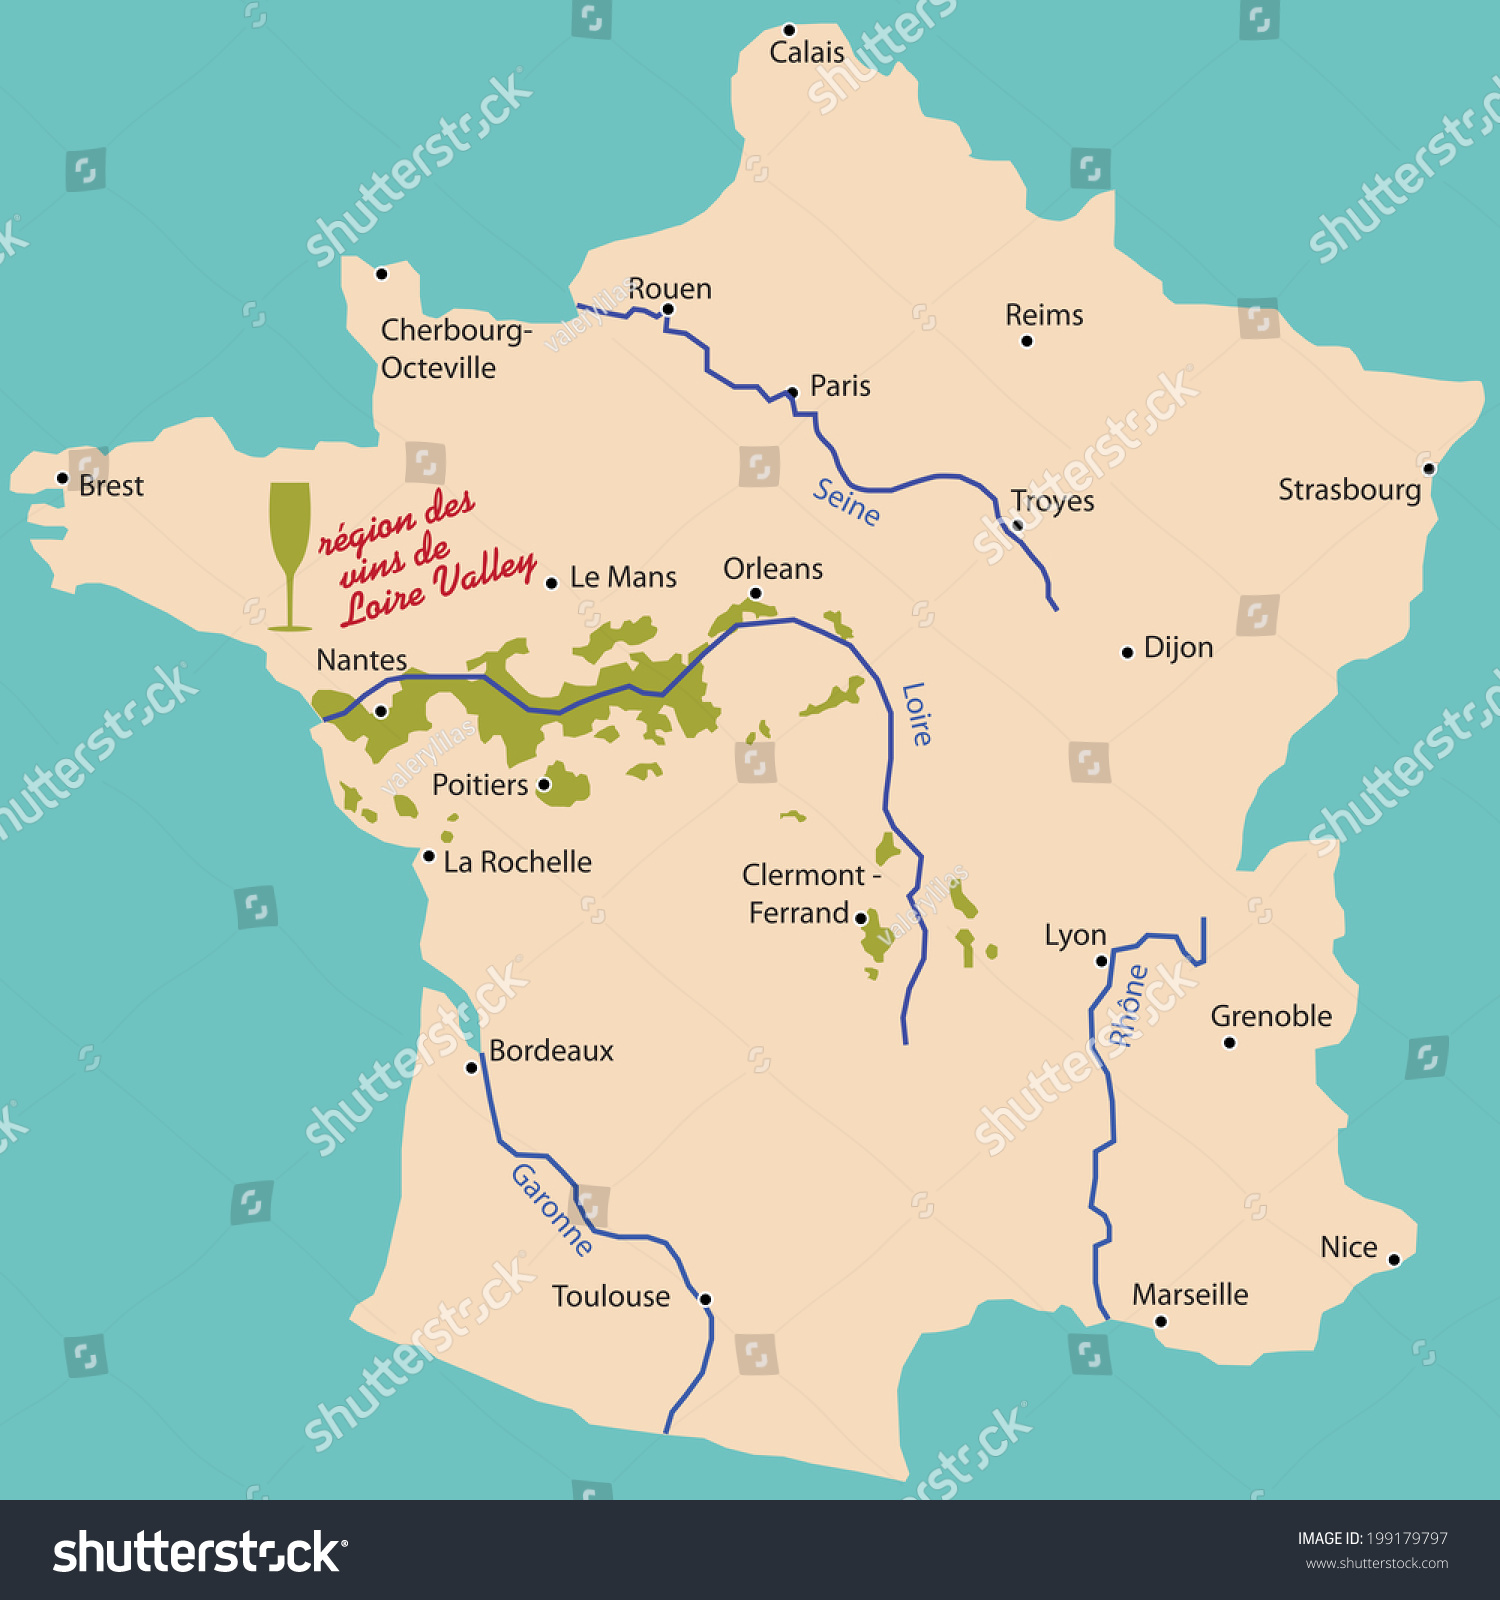 map wine region of loire valley in france. map wine region loire valley france stock vector